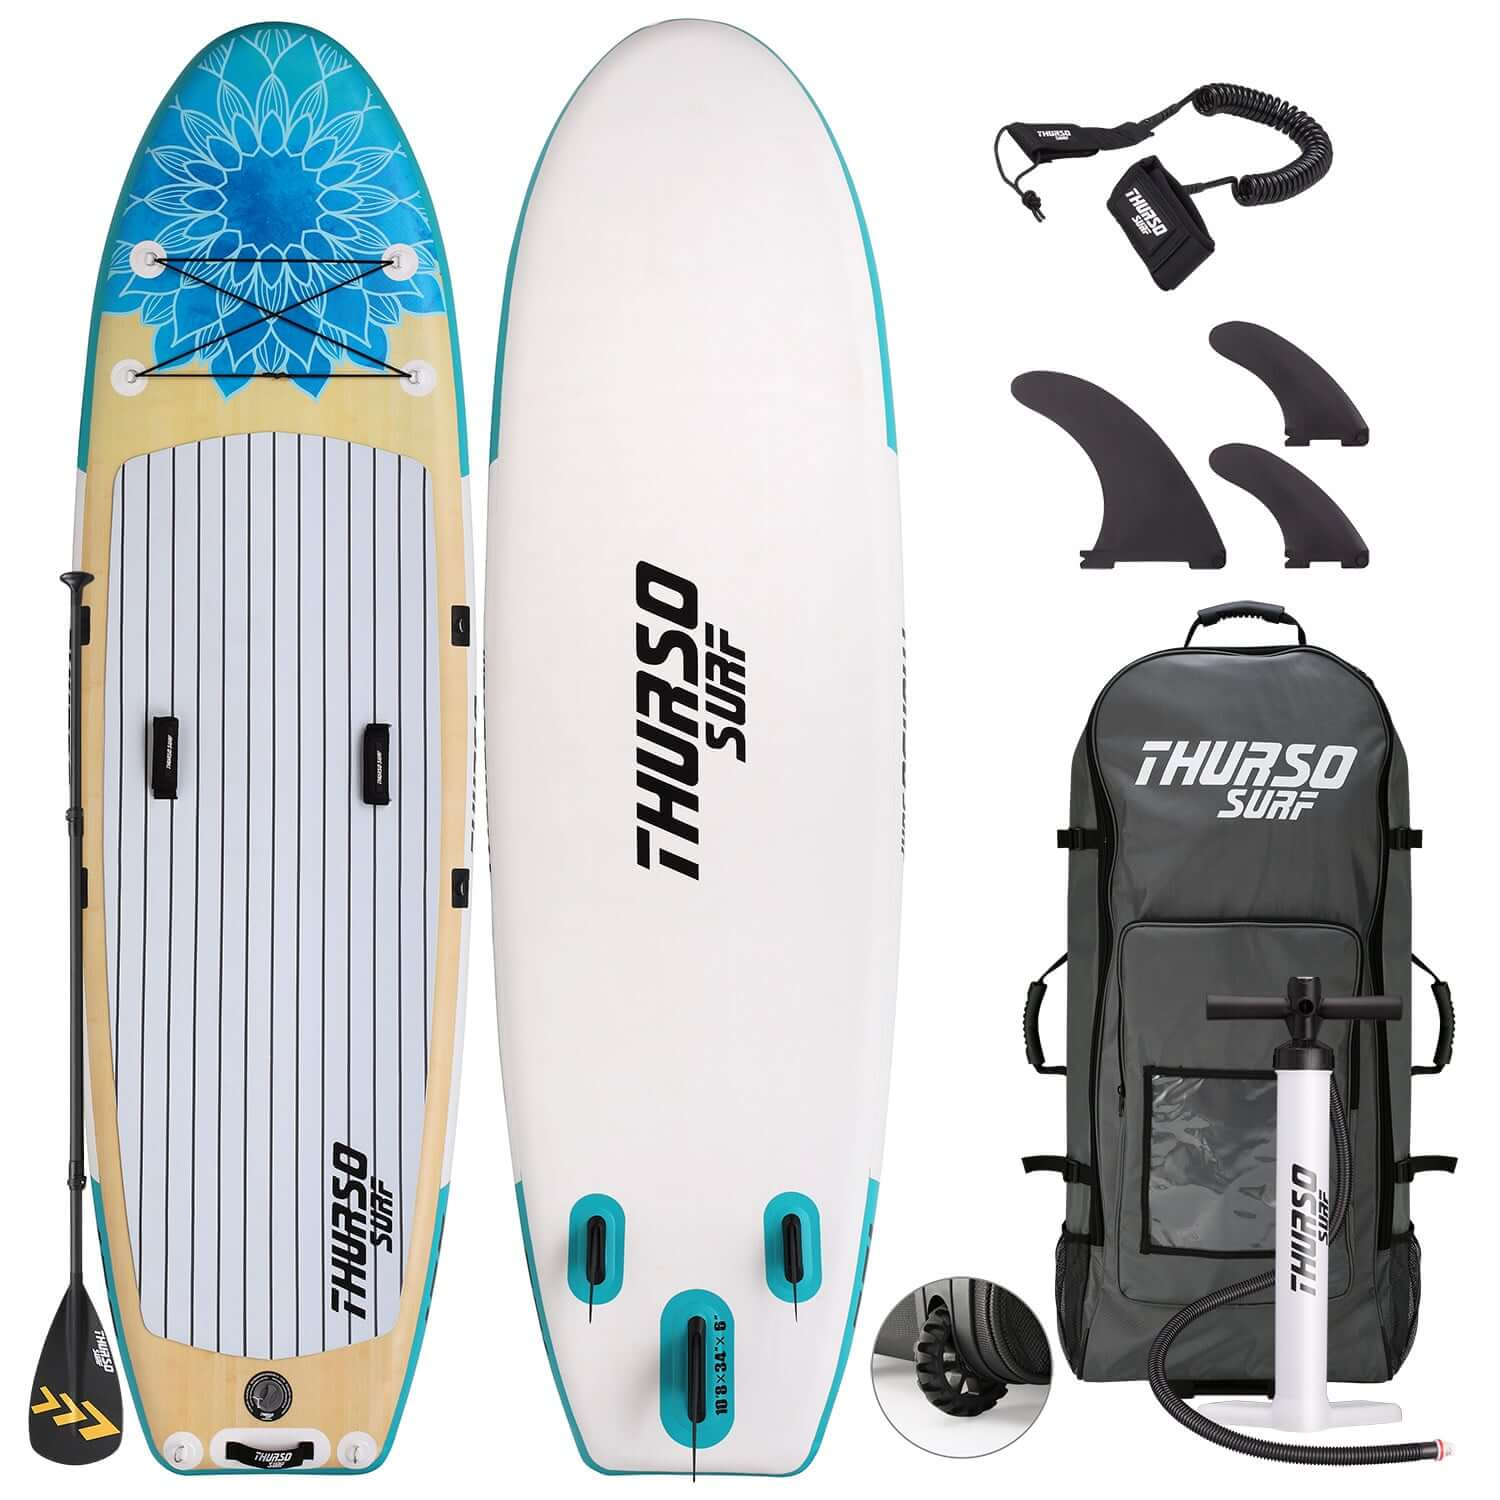 thurso surf yoga board package